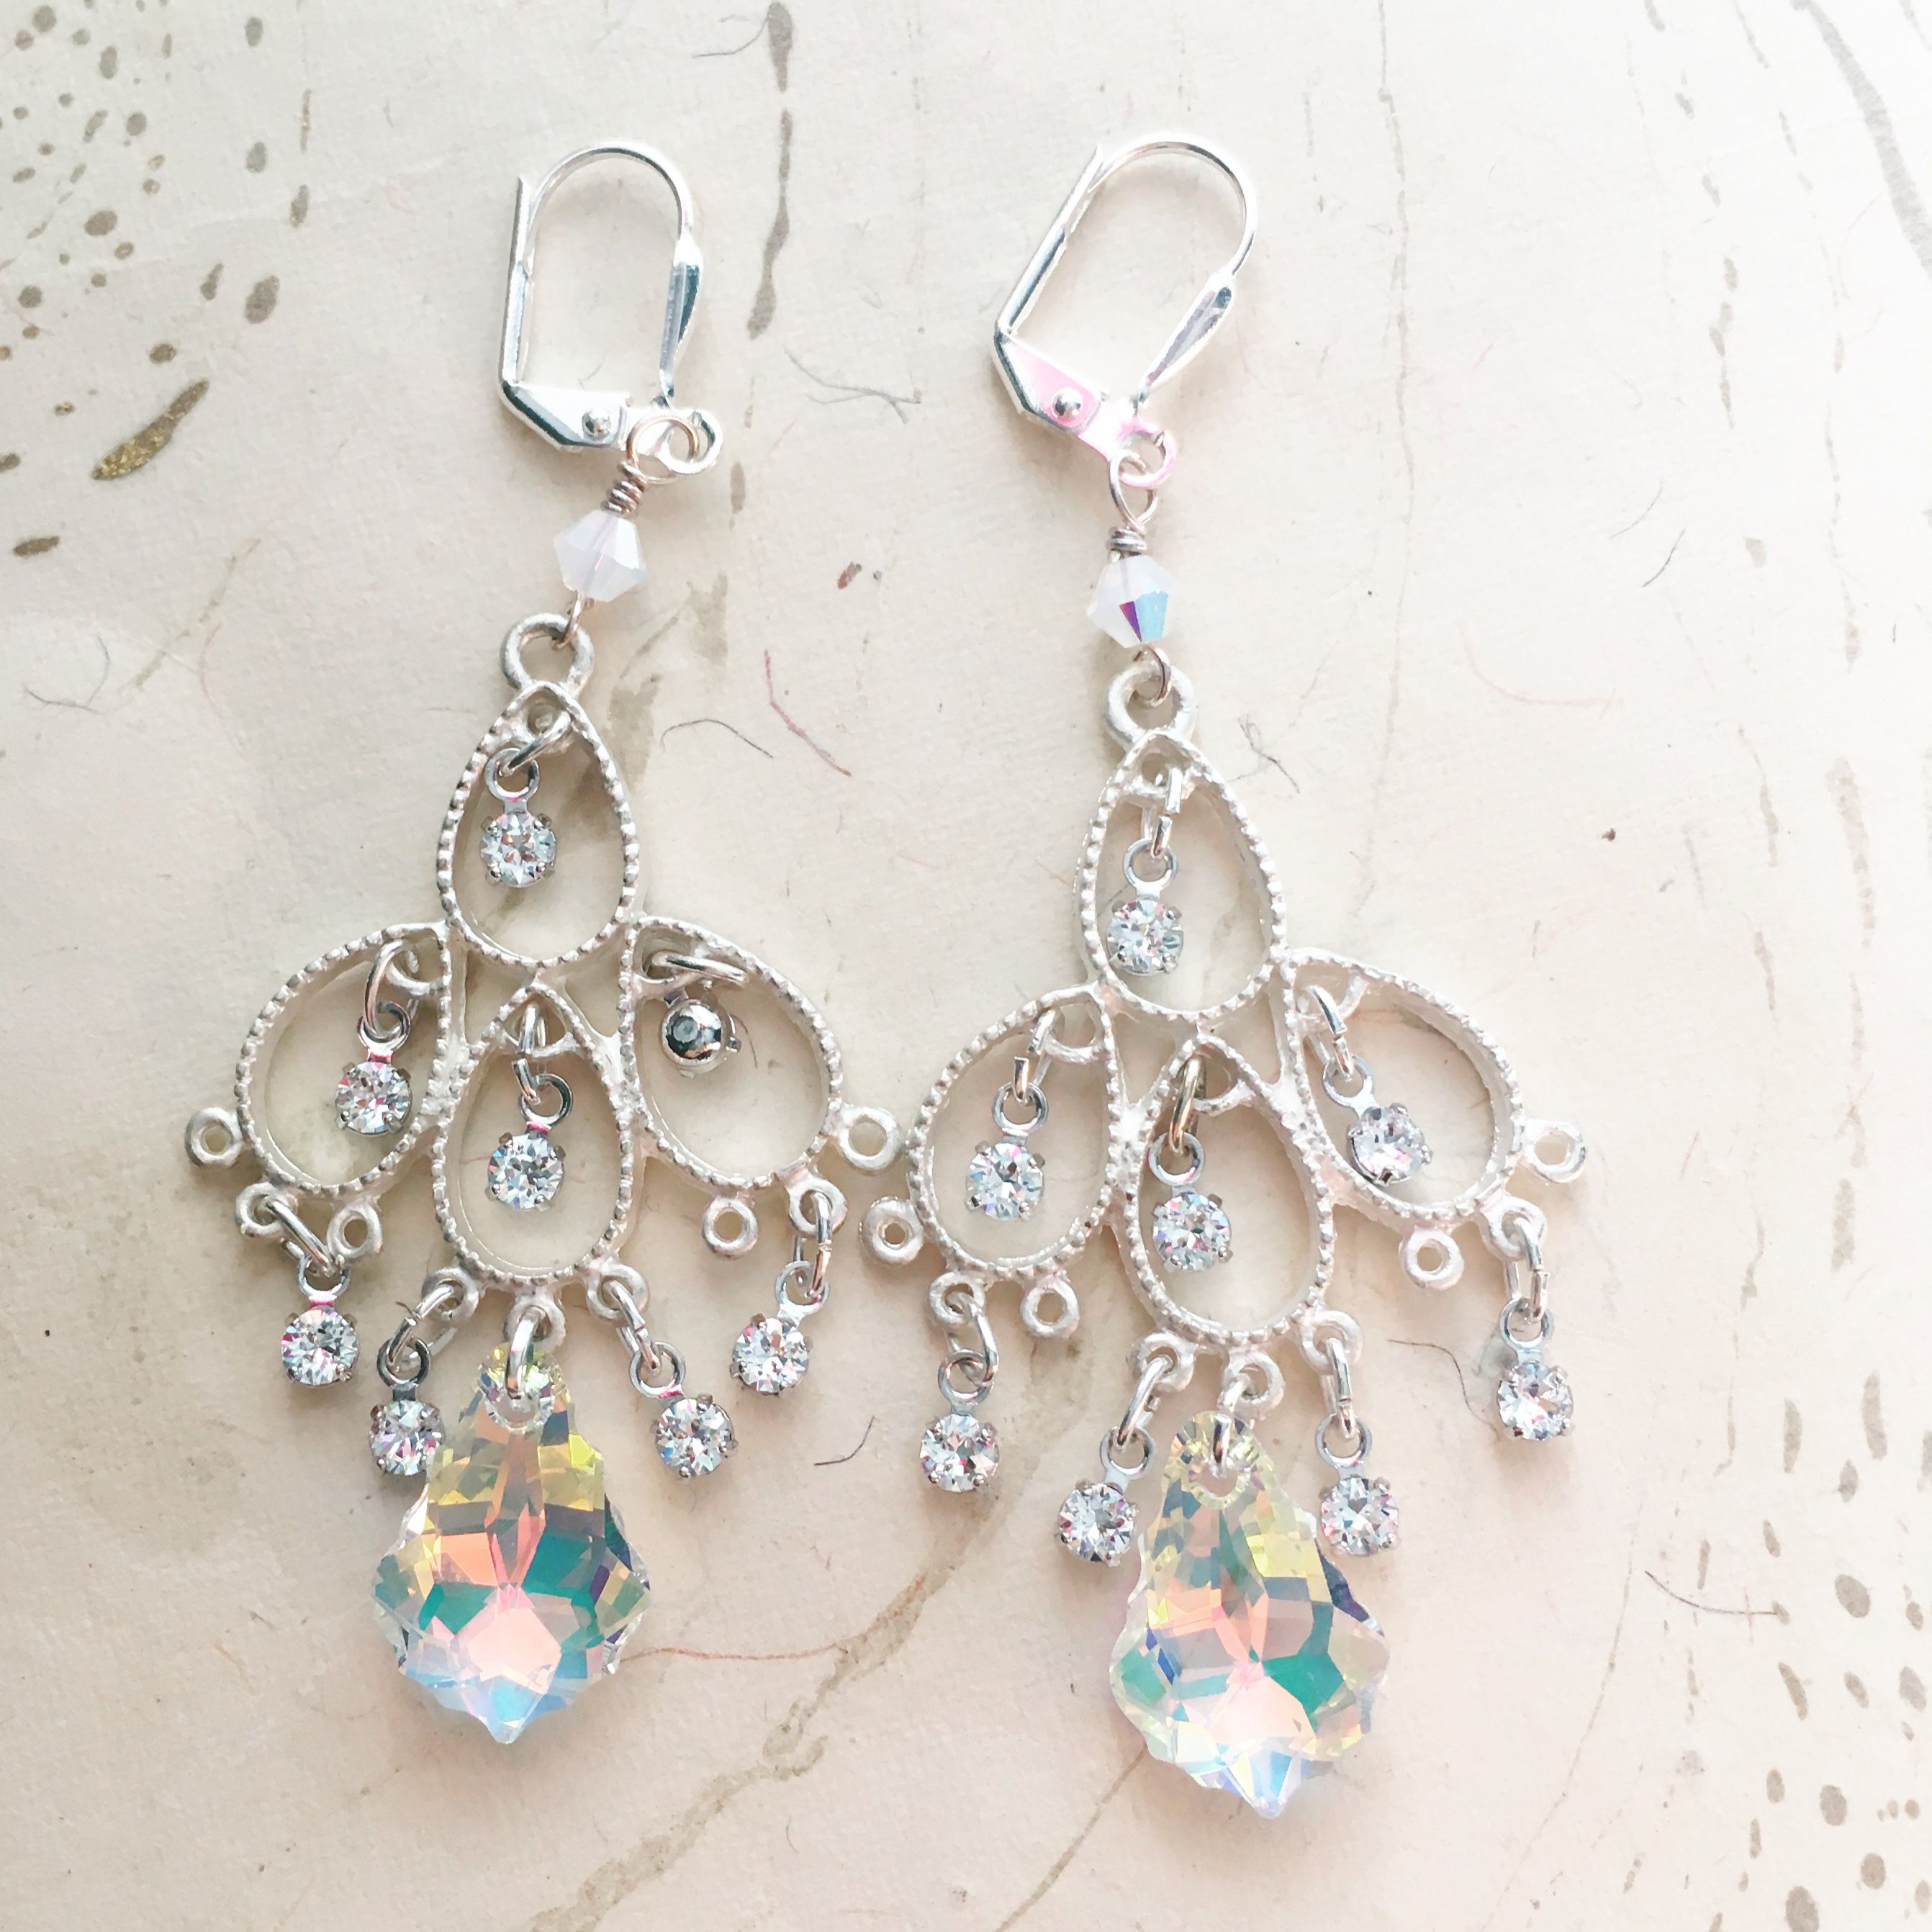 Snow Queen Diamontrigue Jewelry: Queen Earrings, Personalized Jewelry